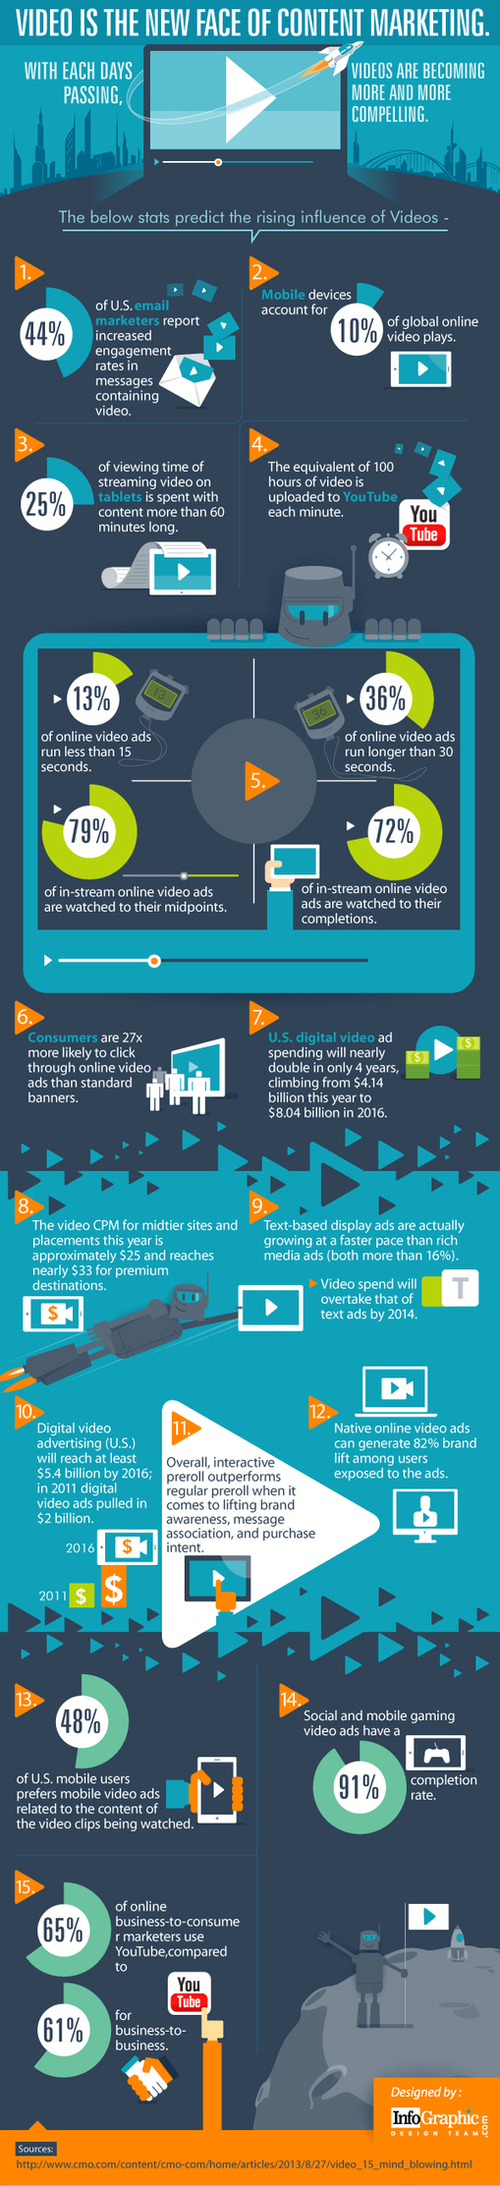 Video Is the New Face of Content Marketing   #video #marketing #infographic